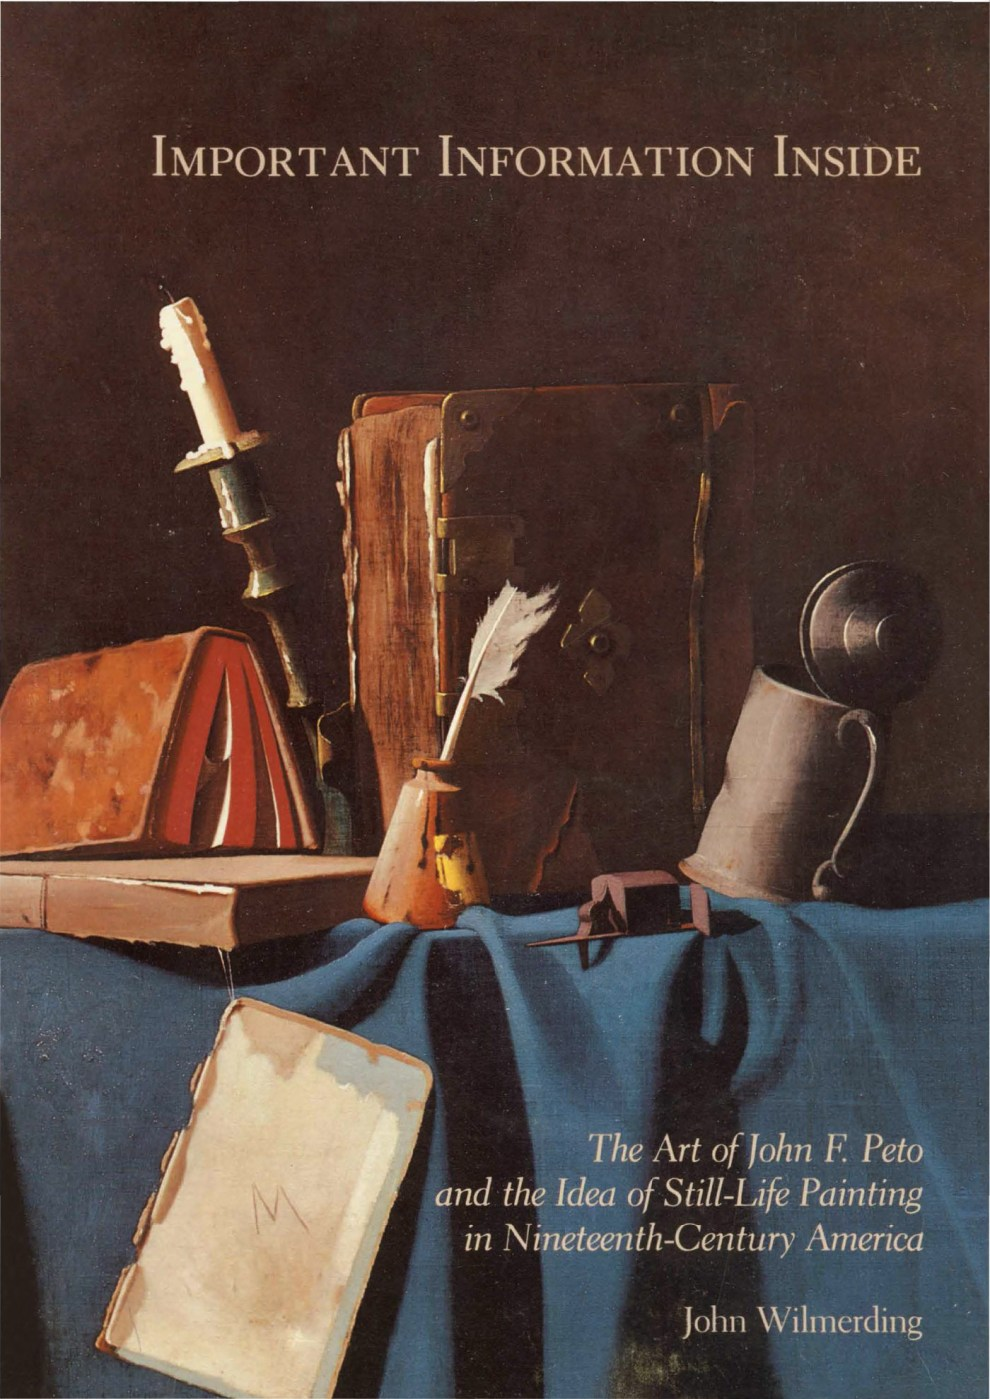 """Important Information Inside: The Art of John F. Peto and the Idea of Still-Life Painting in Nineteenth-Century America"" by John Wilmerding, National Gallery of Art, Washington, DC, Eastern Press, Inc., New Haven, CT, 1983, pages 79-80, 250, 262, illustrated: b&w on page 79, figure 61"